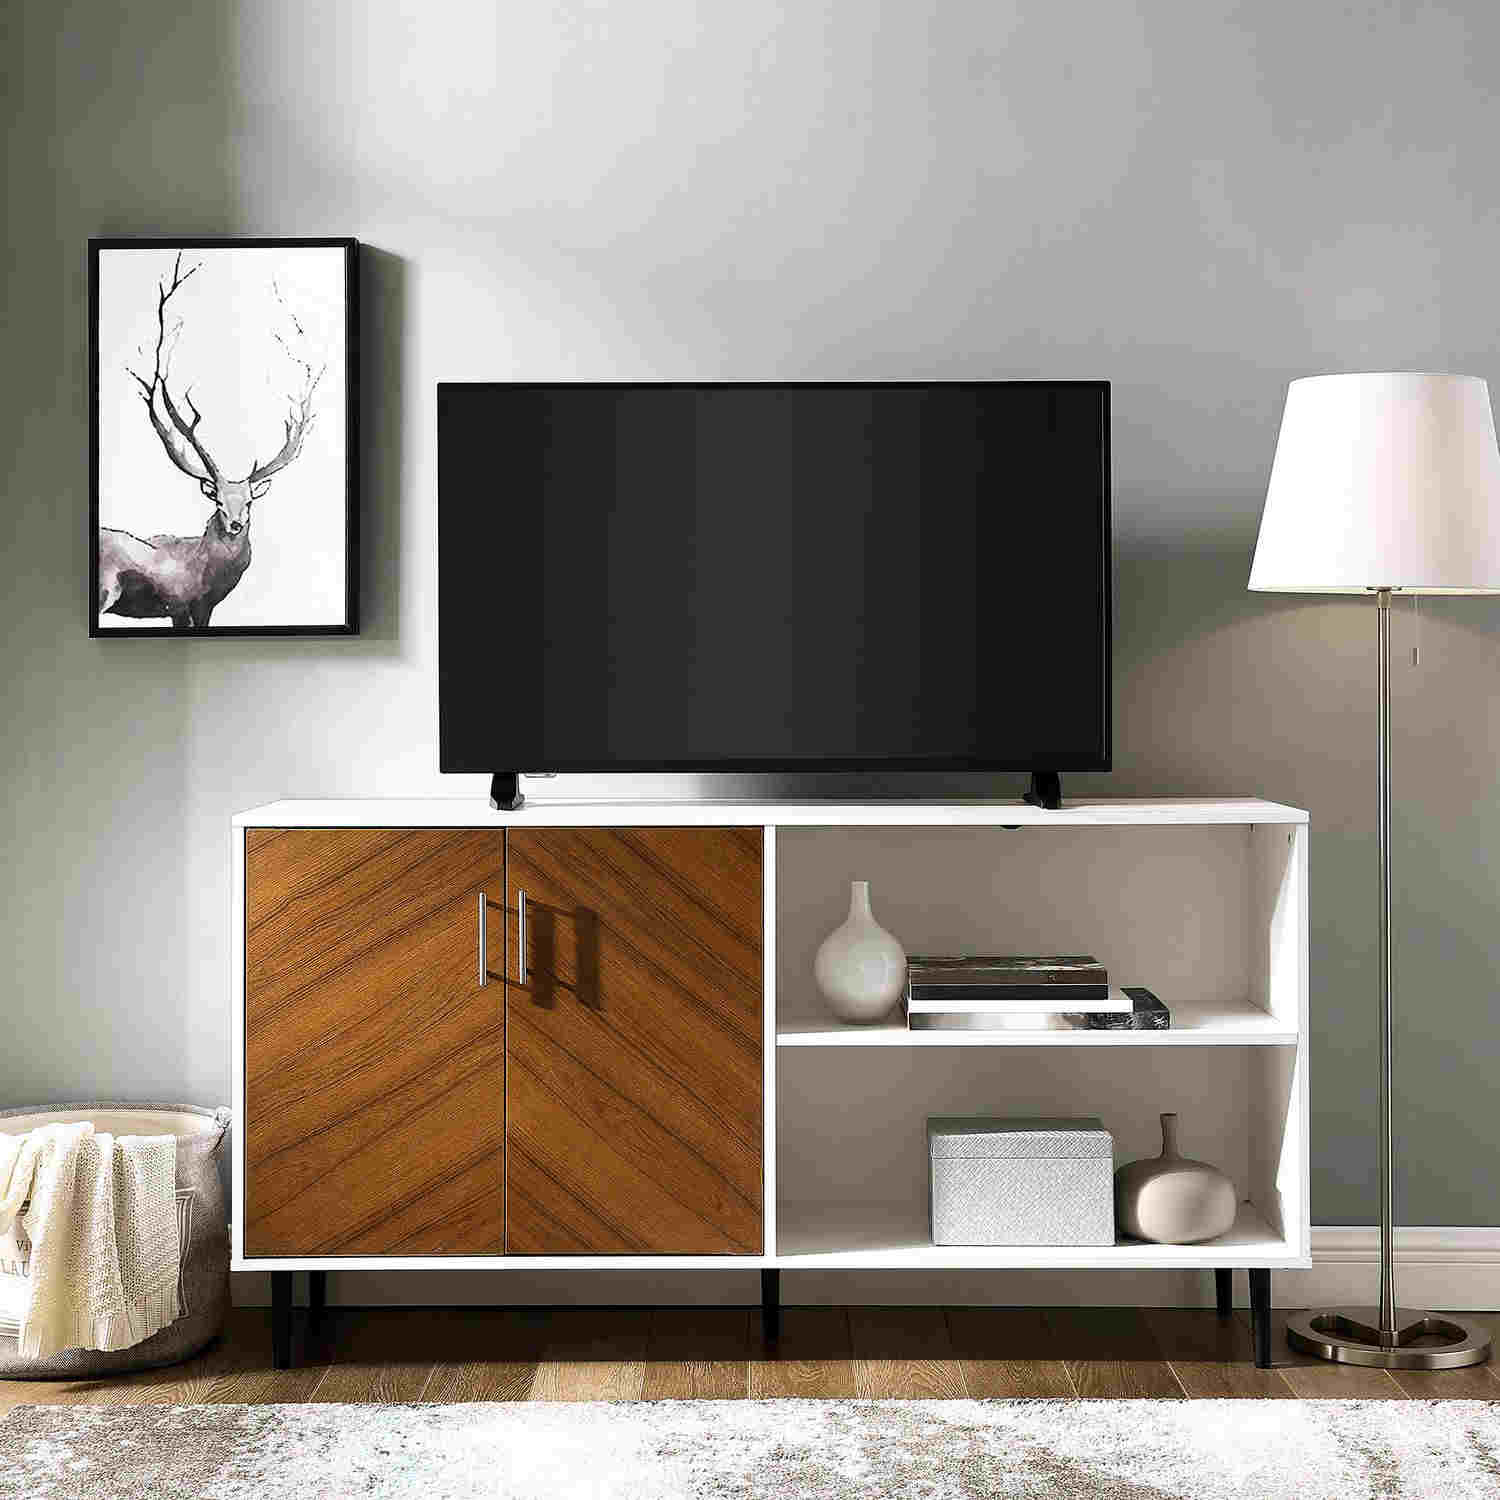 17 Stylish Mid Century Modern Tv Stand Design Ideas